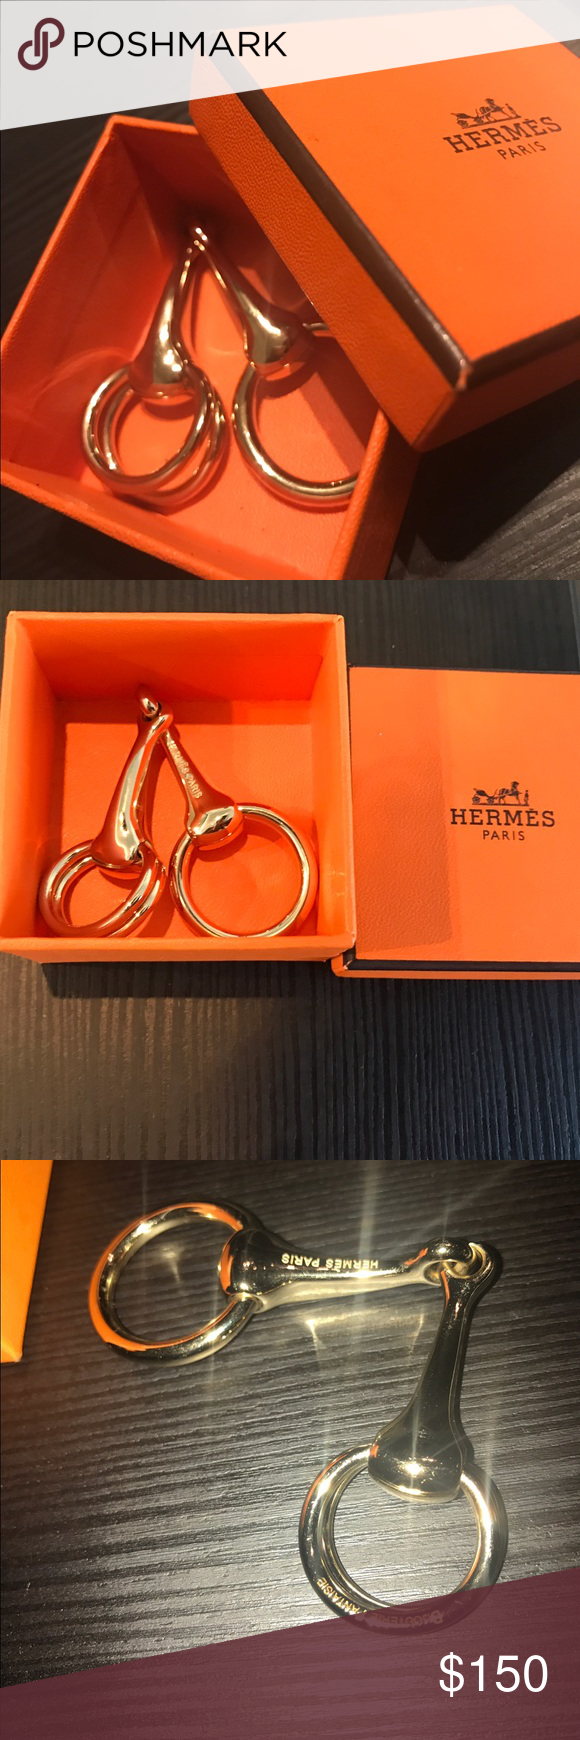 """Hermes """"Bijouterie Fantaisie"""" Horsebit Scarf Ring Authentic Gold Toned Hermes """"Bijouterie Fantaisie"""" Horsebit Scarf Ring. This Authentic Hermès Gold Tone Horse Bit Scarf Ring is pristine. The equestrian design can be used in a multitude of ways to show off a scarf or shawl around the neck or the waist. Original Box included Hermes Accessories Scarves & Wraps"""